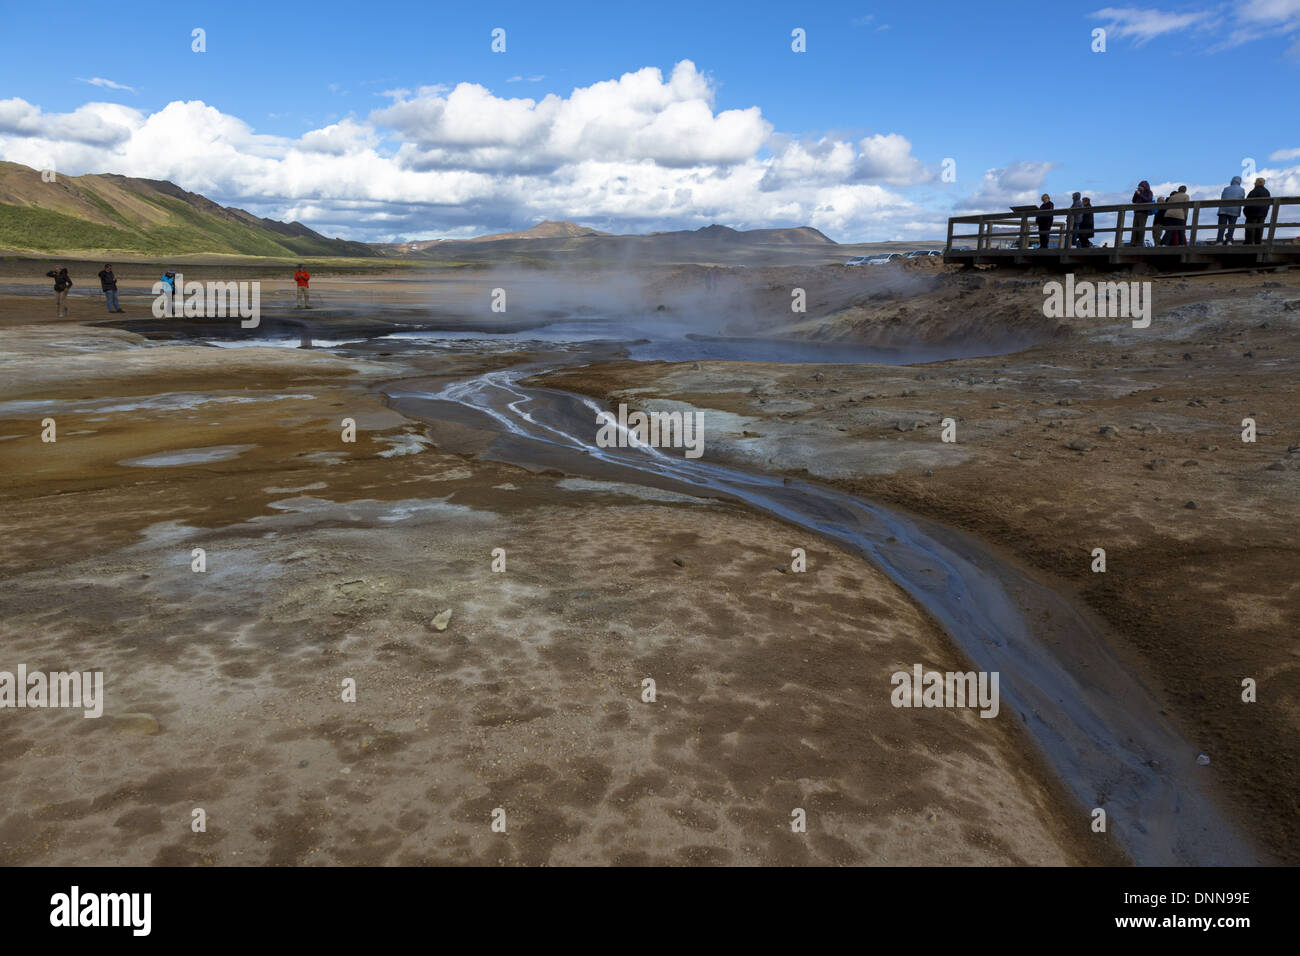 Iceland Tourists at the Namafjall geothermal hot spring area examining the steaming and bubbling pools - Stock Image